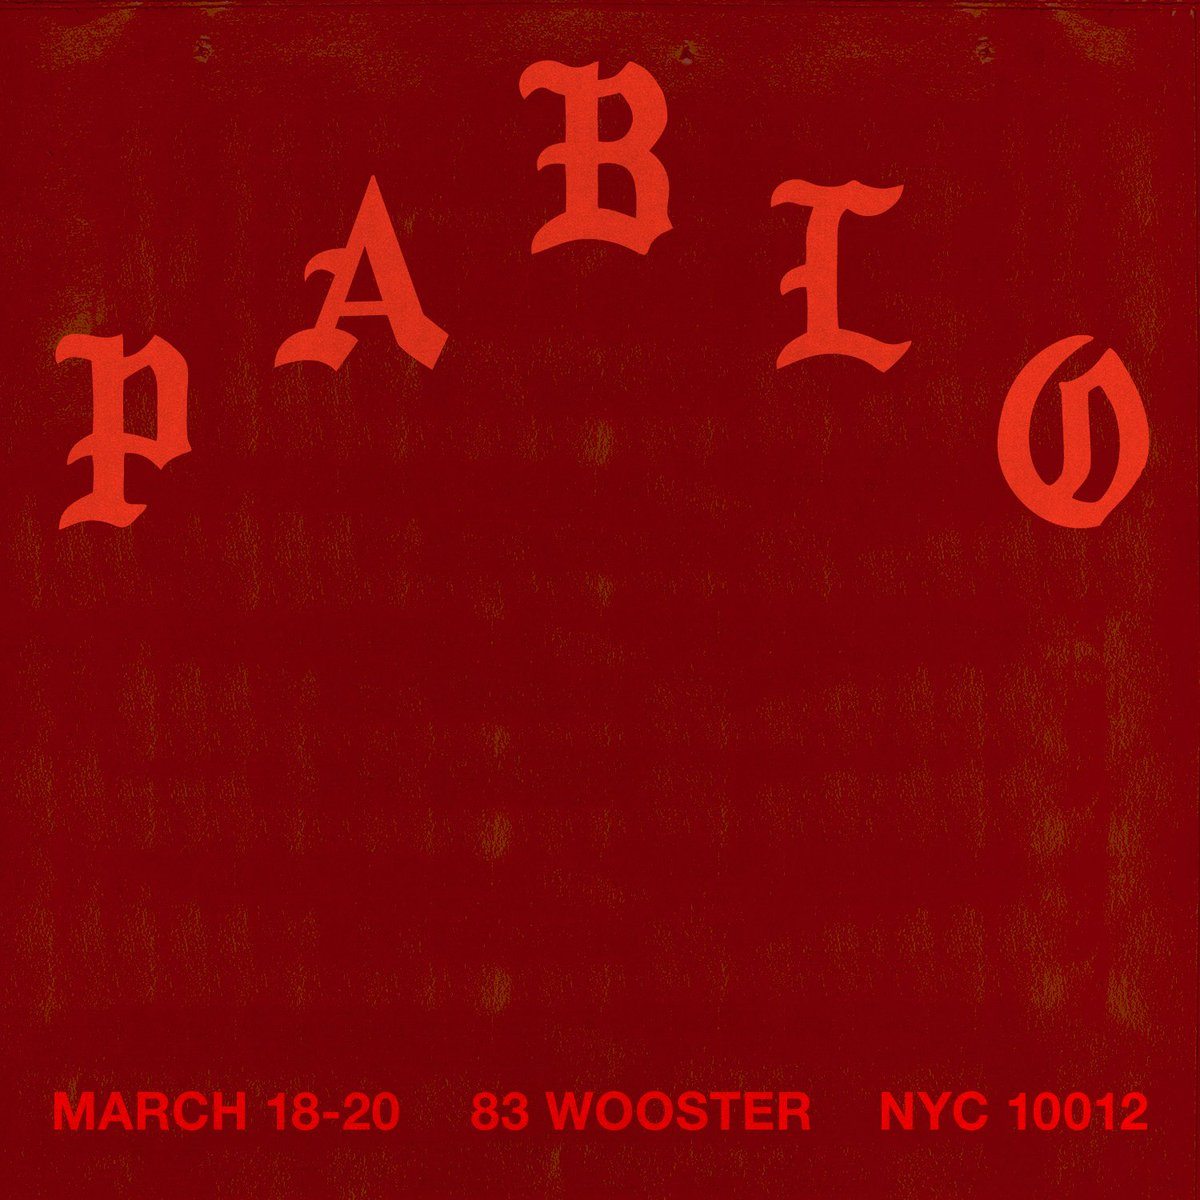 PABLO POP-UP SHOP MARCH 18-20 FRI 4-8 PM SAT SUN 12-8 PM AT 83 WOOSTER IN NYC https://t.co/j1t9Ng5JkO